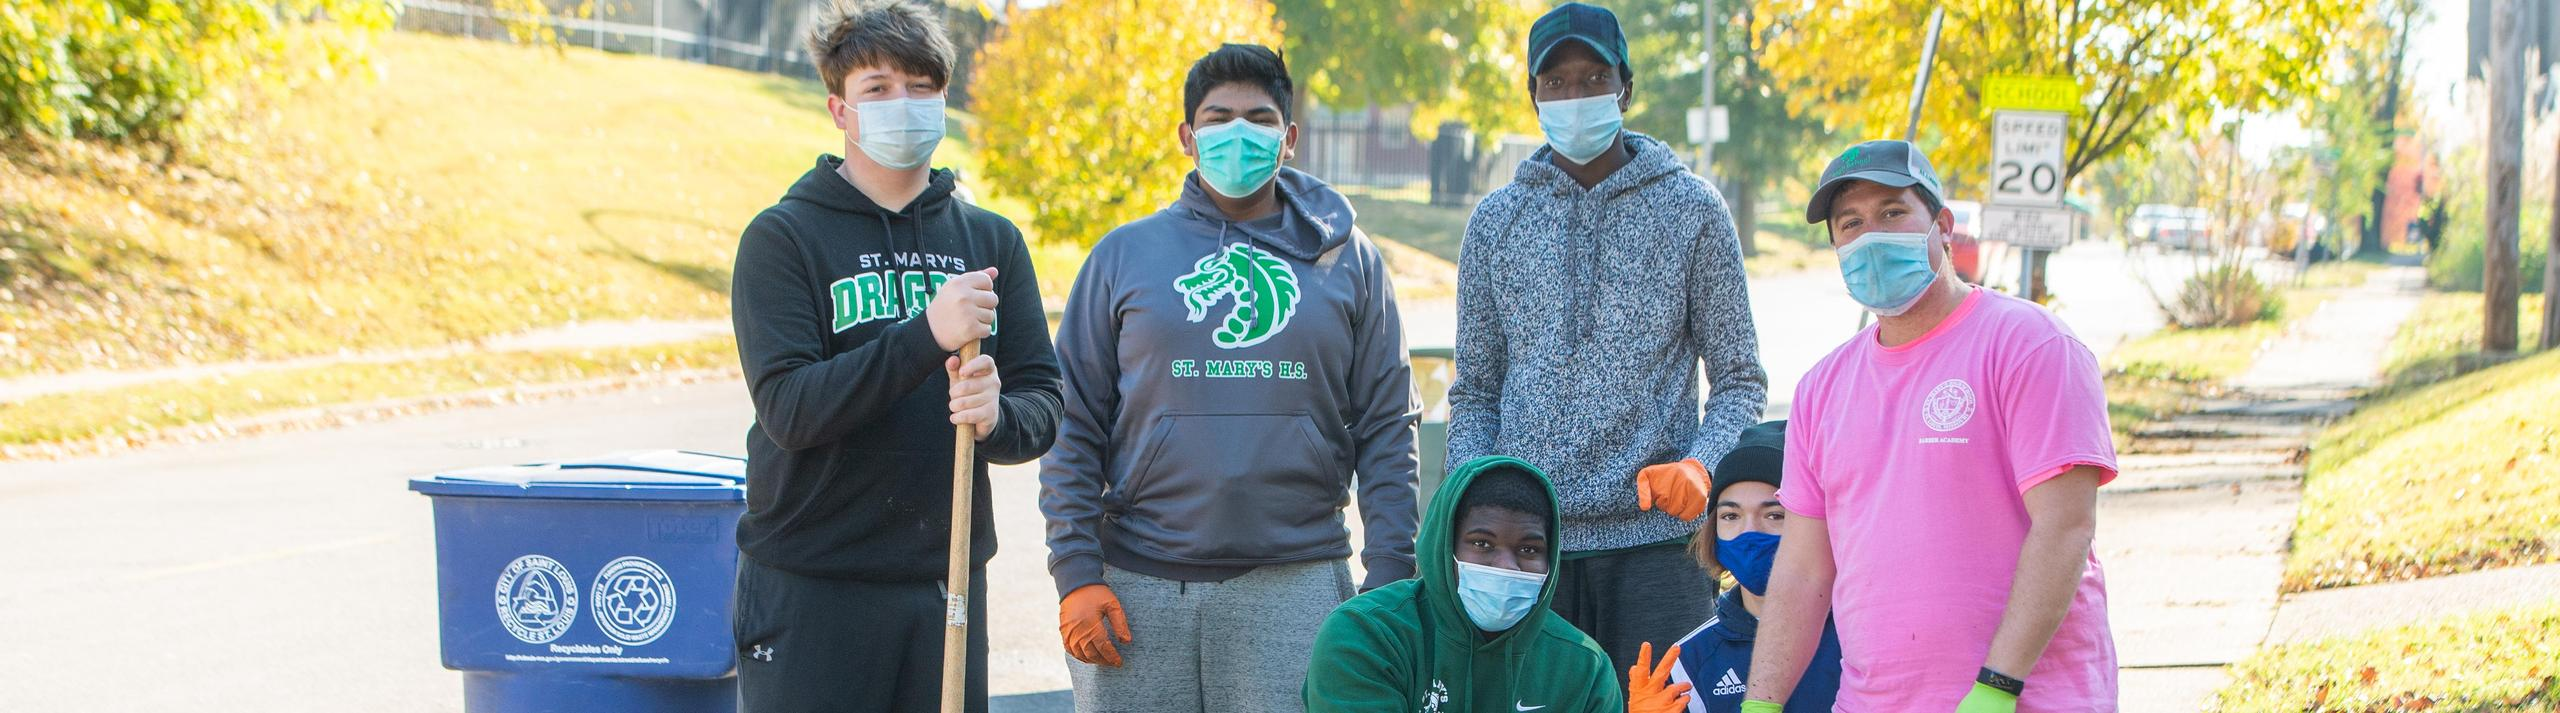 Members of the Barber Academy working together to clean up streets in South City.